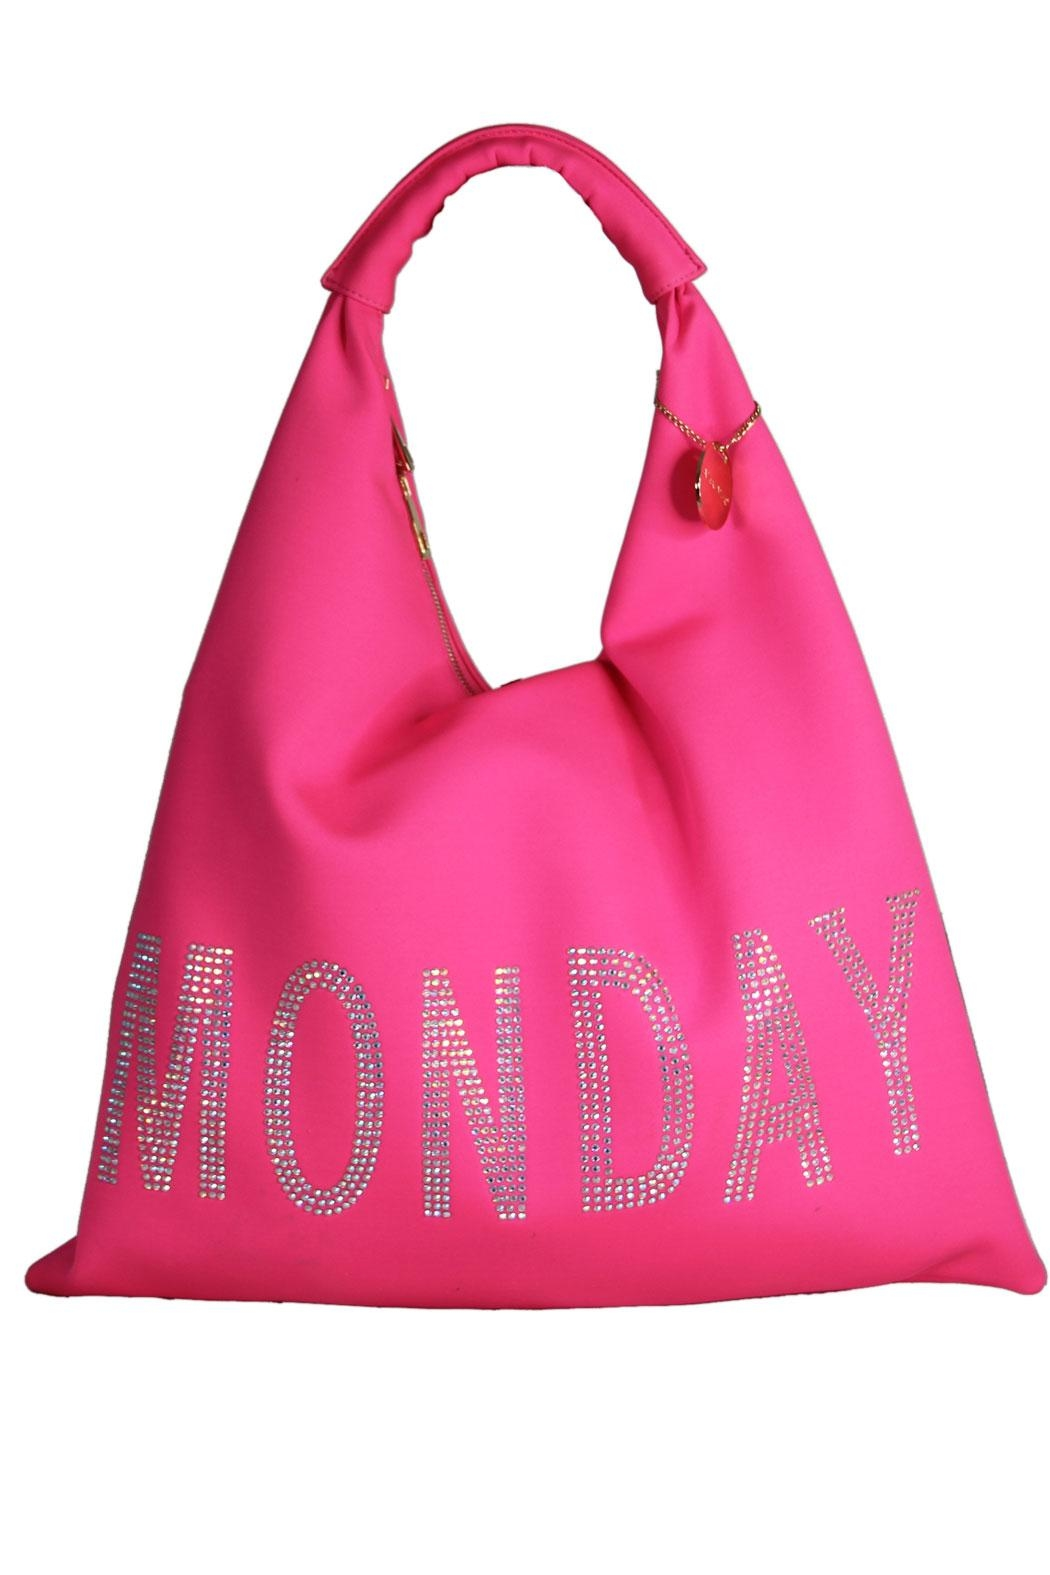 eee027eae34 Alex Max Group Monday Tote from New York by Runway   Rose — Shoptiques